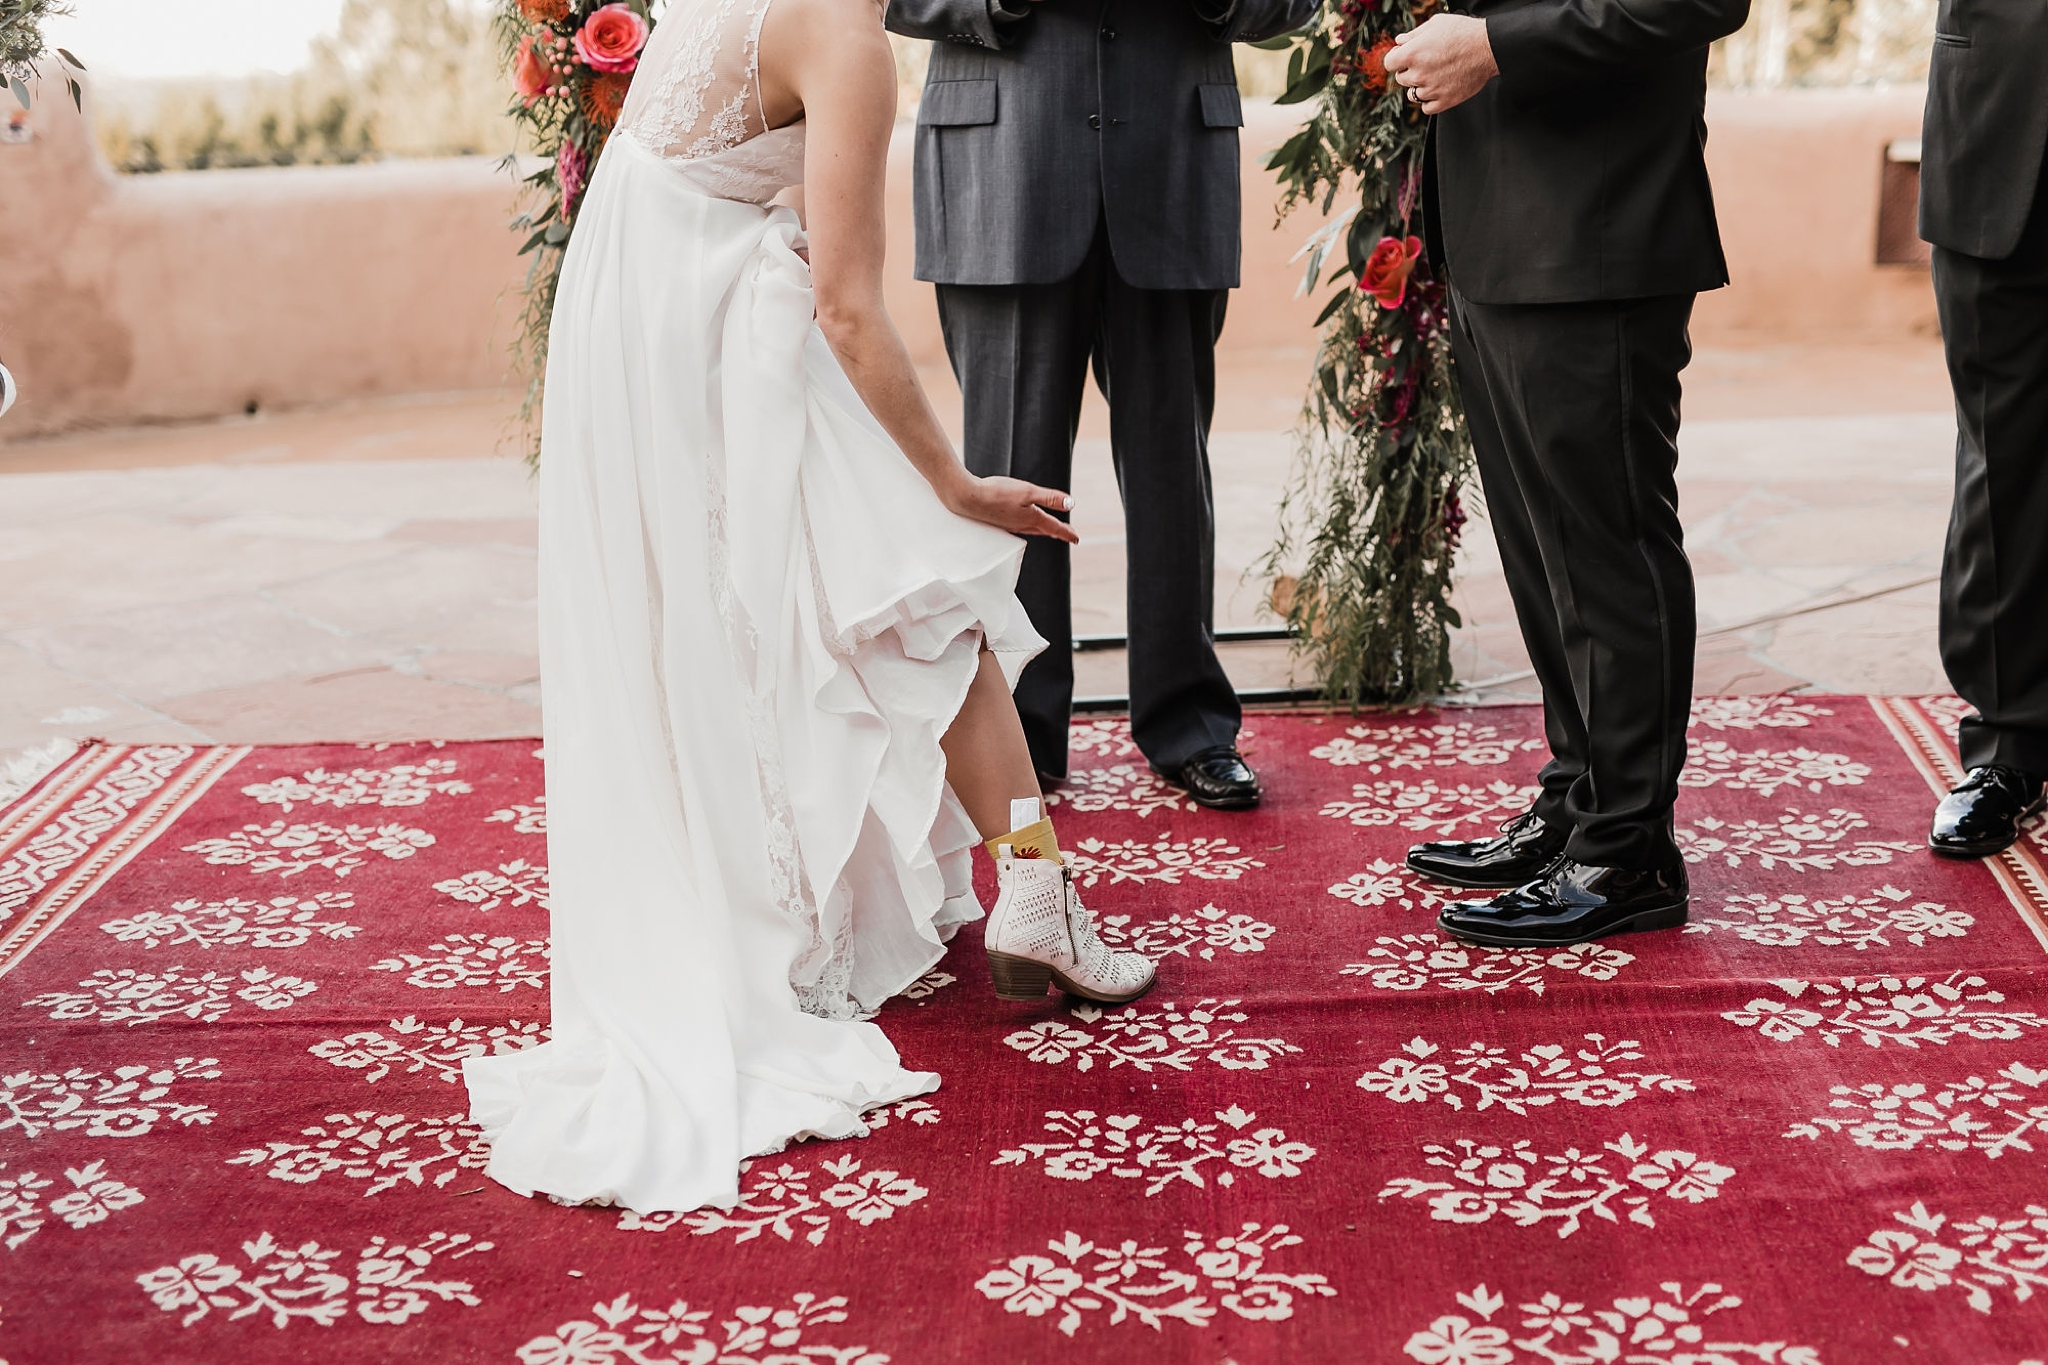 Alicia+lucia+photography+-+albuquerque+wedding+photographer+-+santa+fe+wedding+photography+-+new+mexico+wedding+photographer+-+new+mexico+wedding+-+wedding+vows+-+writing+your+own+vows+-+wedding+inspo_0031.jpg